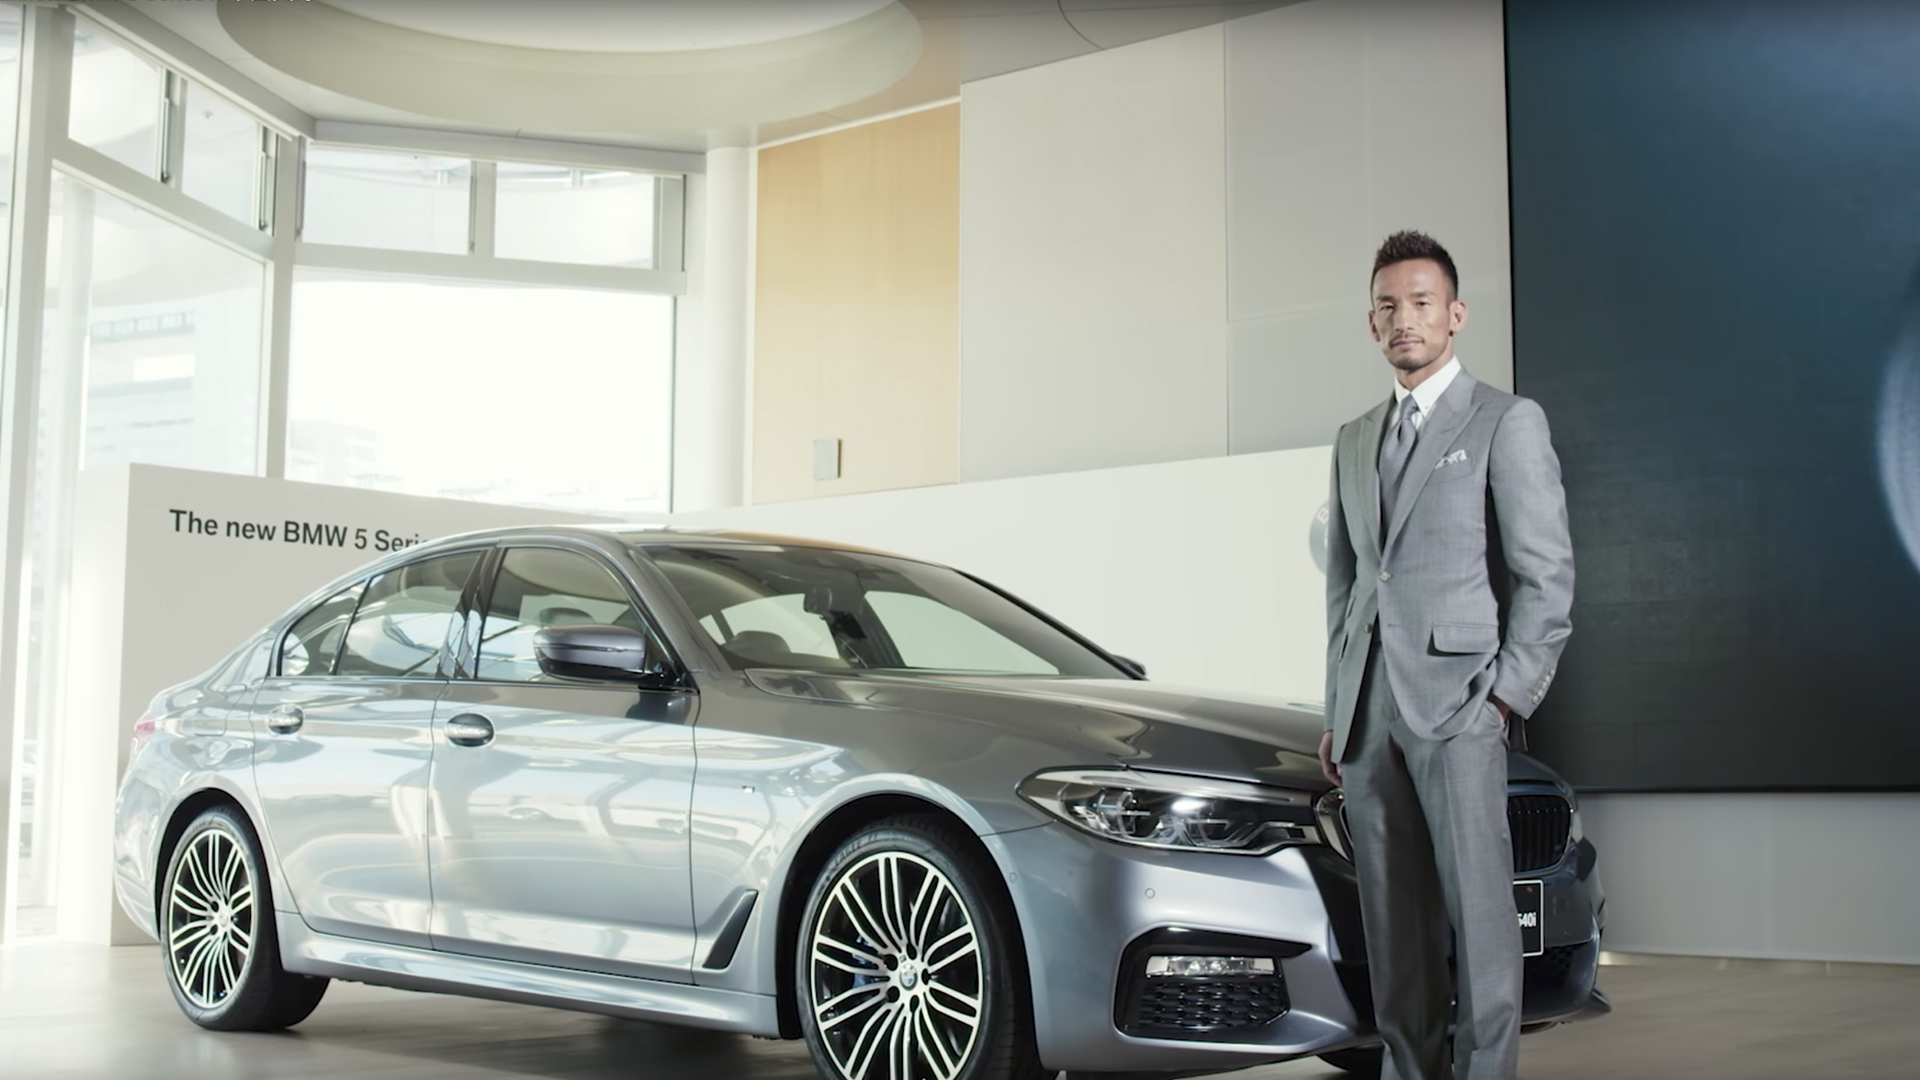 BMW「The all-new BMW 5 Series x 中田英寿」篇 webムービー 同録/Sound Design/MA 担当しました。